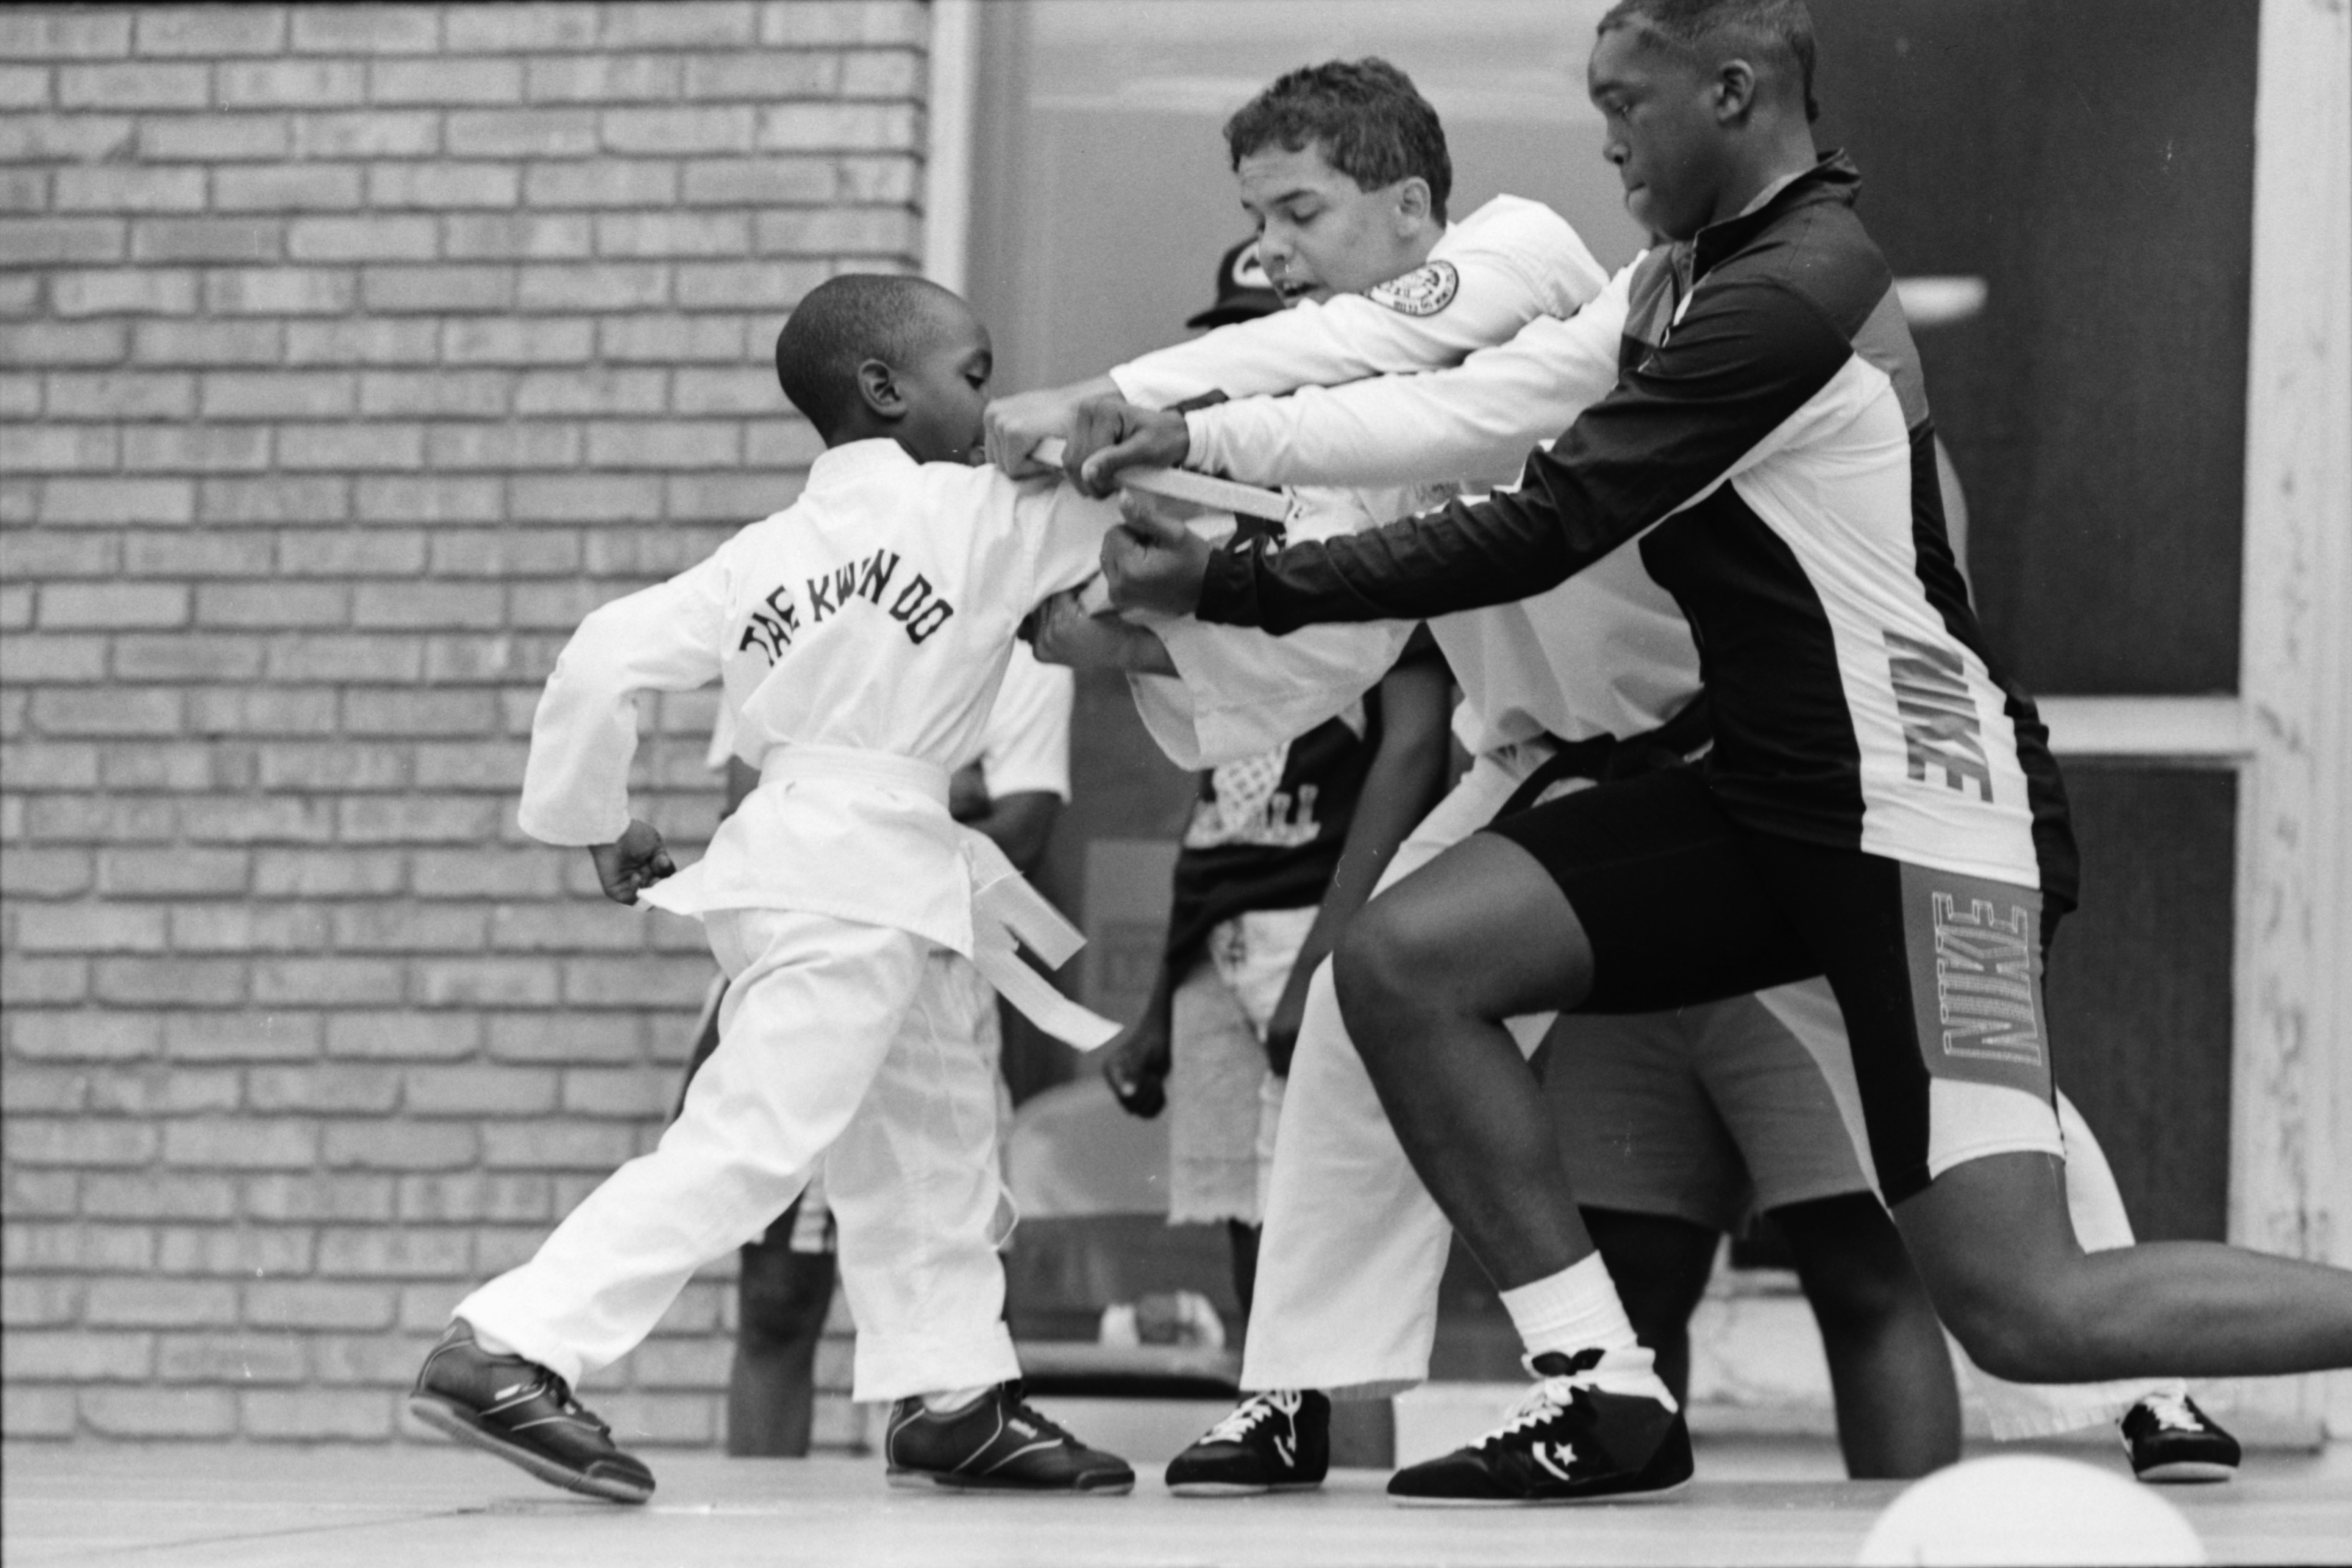 Johnny Smith Demonstrates Tae Kwon Do Board Breaking Technique at Summer Camp Party, August 1989 image